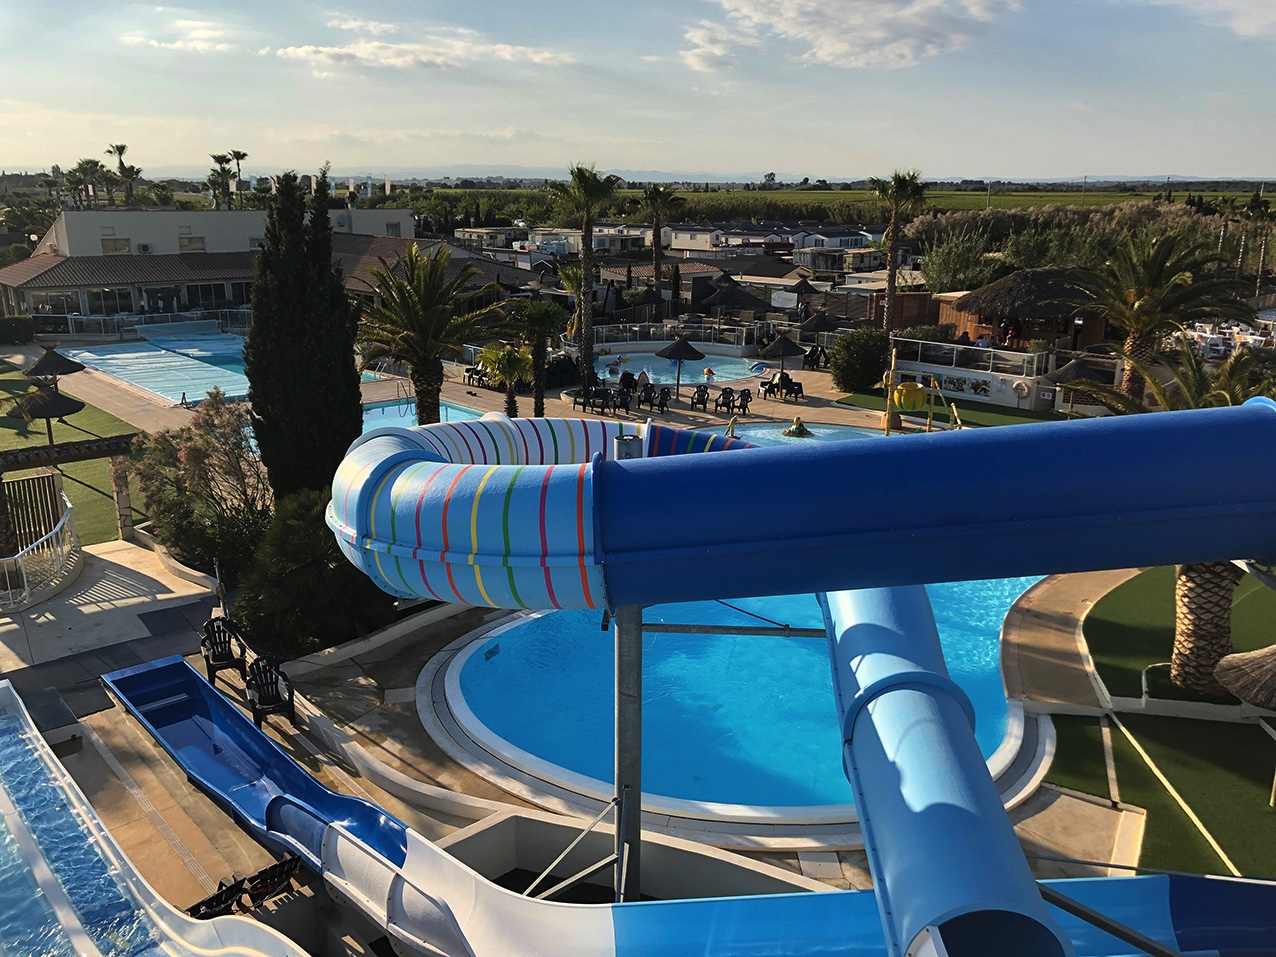 New water slide Multiple pools Palm swimming pool